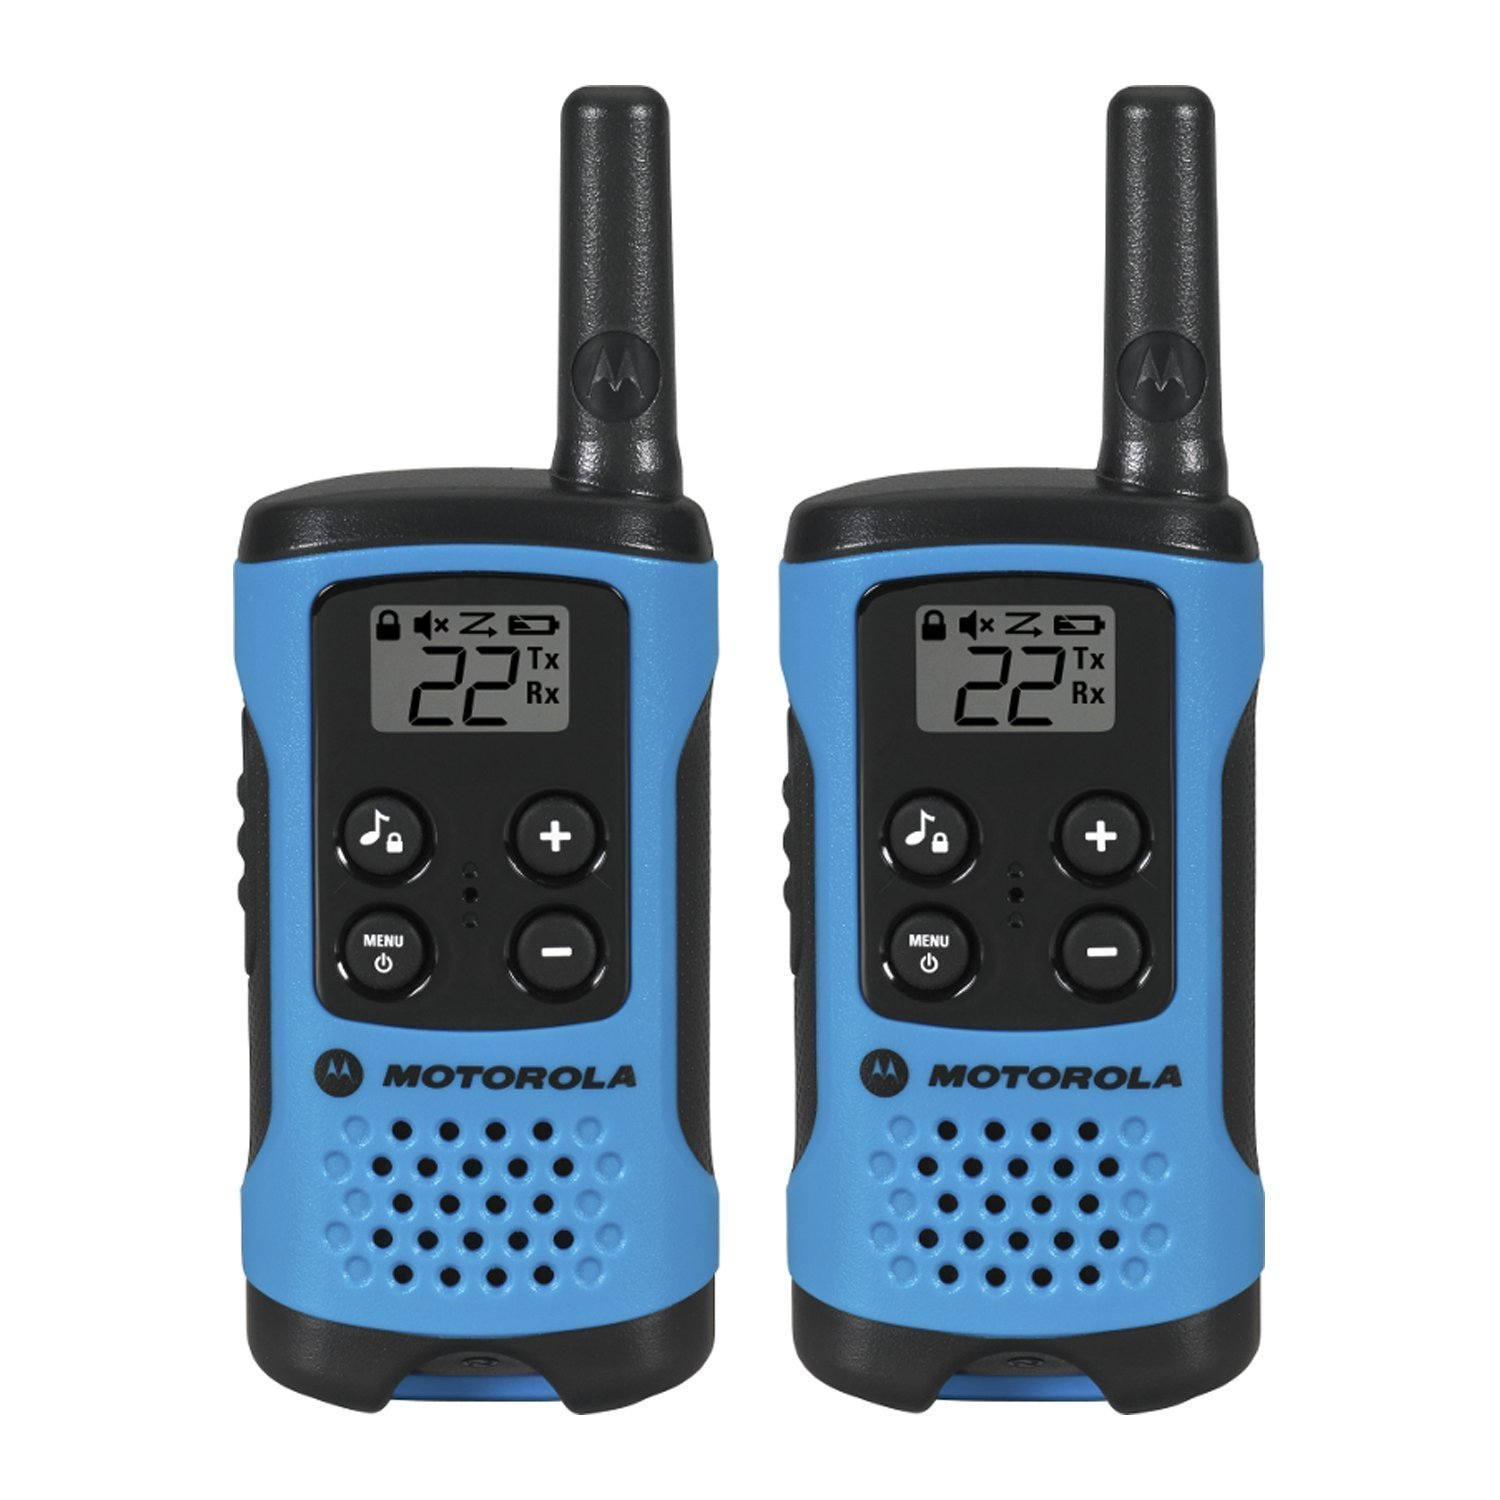 Radios Walkie Talkies, Blue Motorola T100 16-mi Wireless Radio Walkie Talkie,  2pk